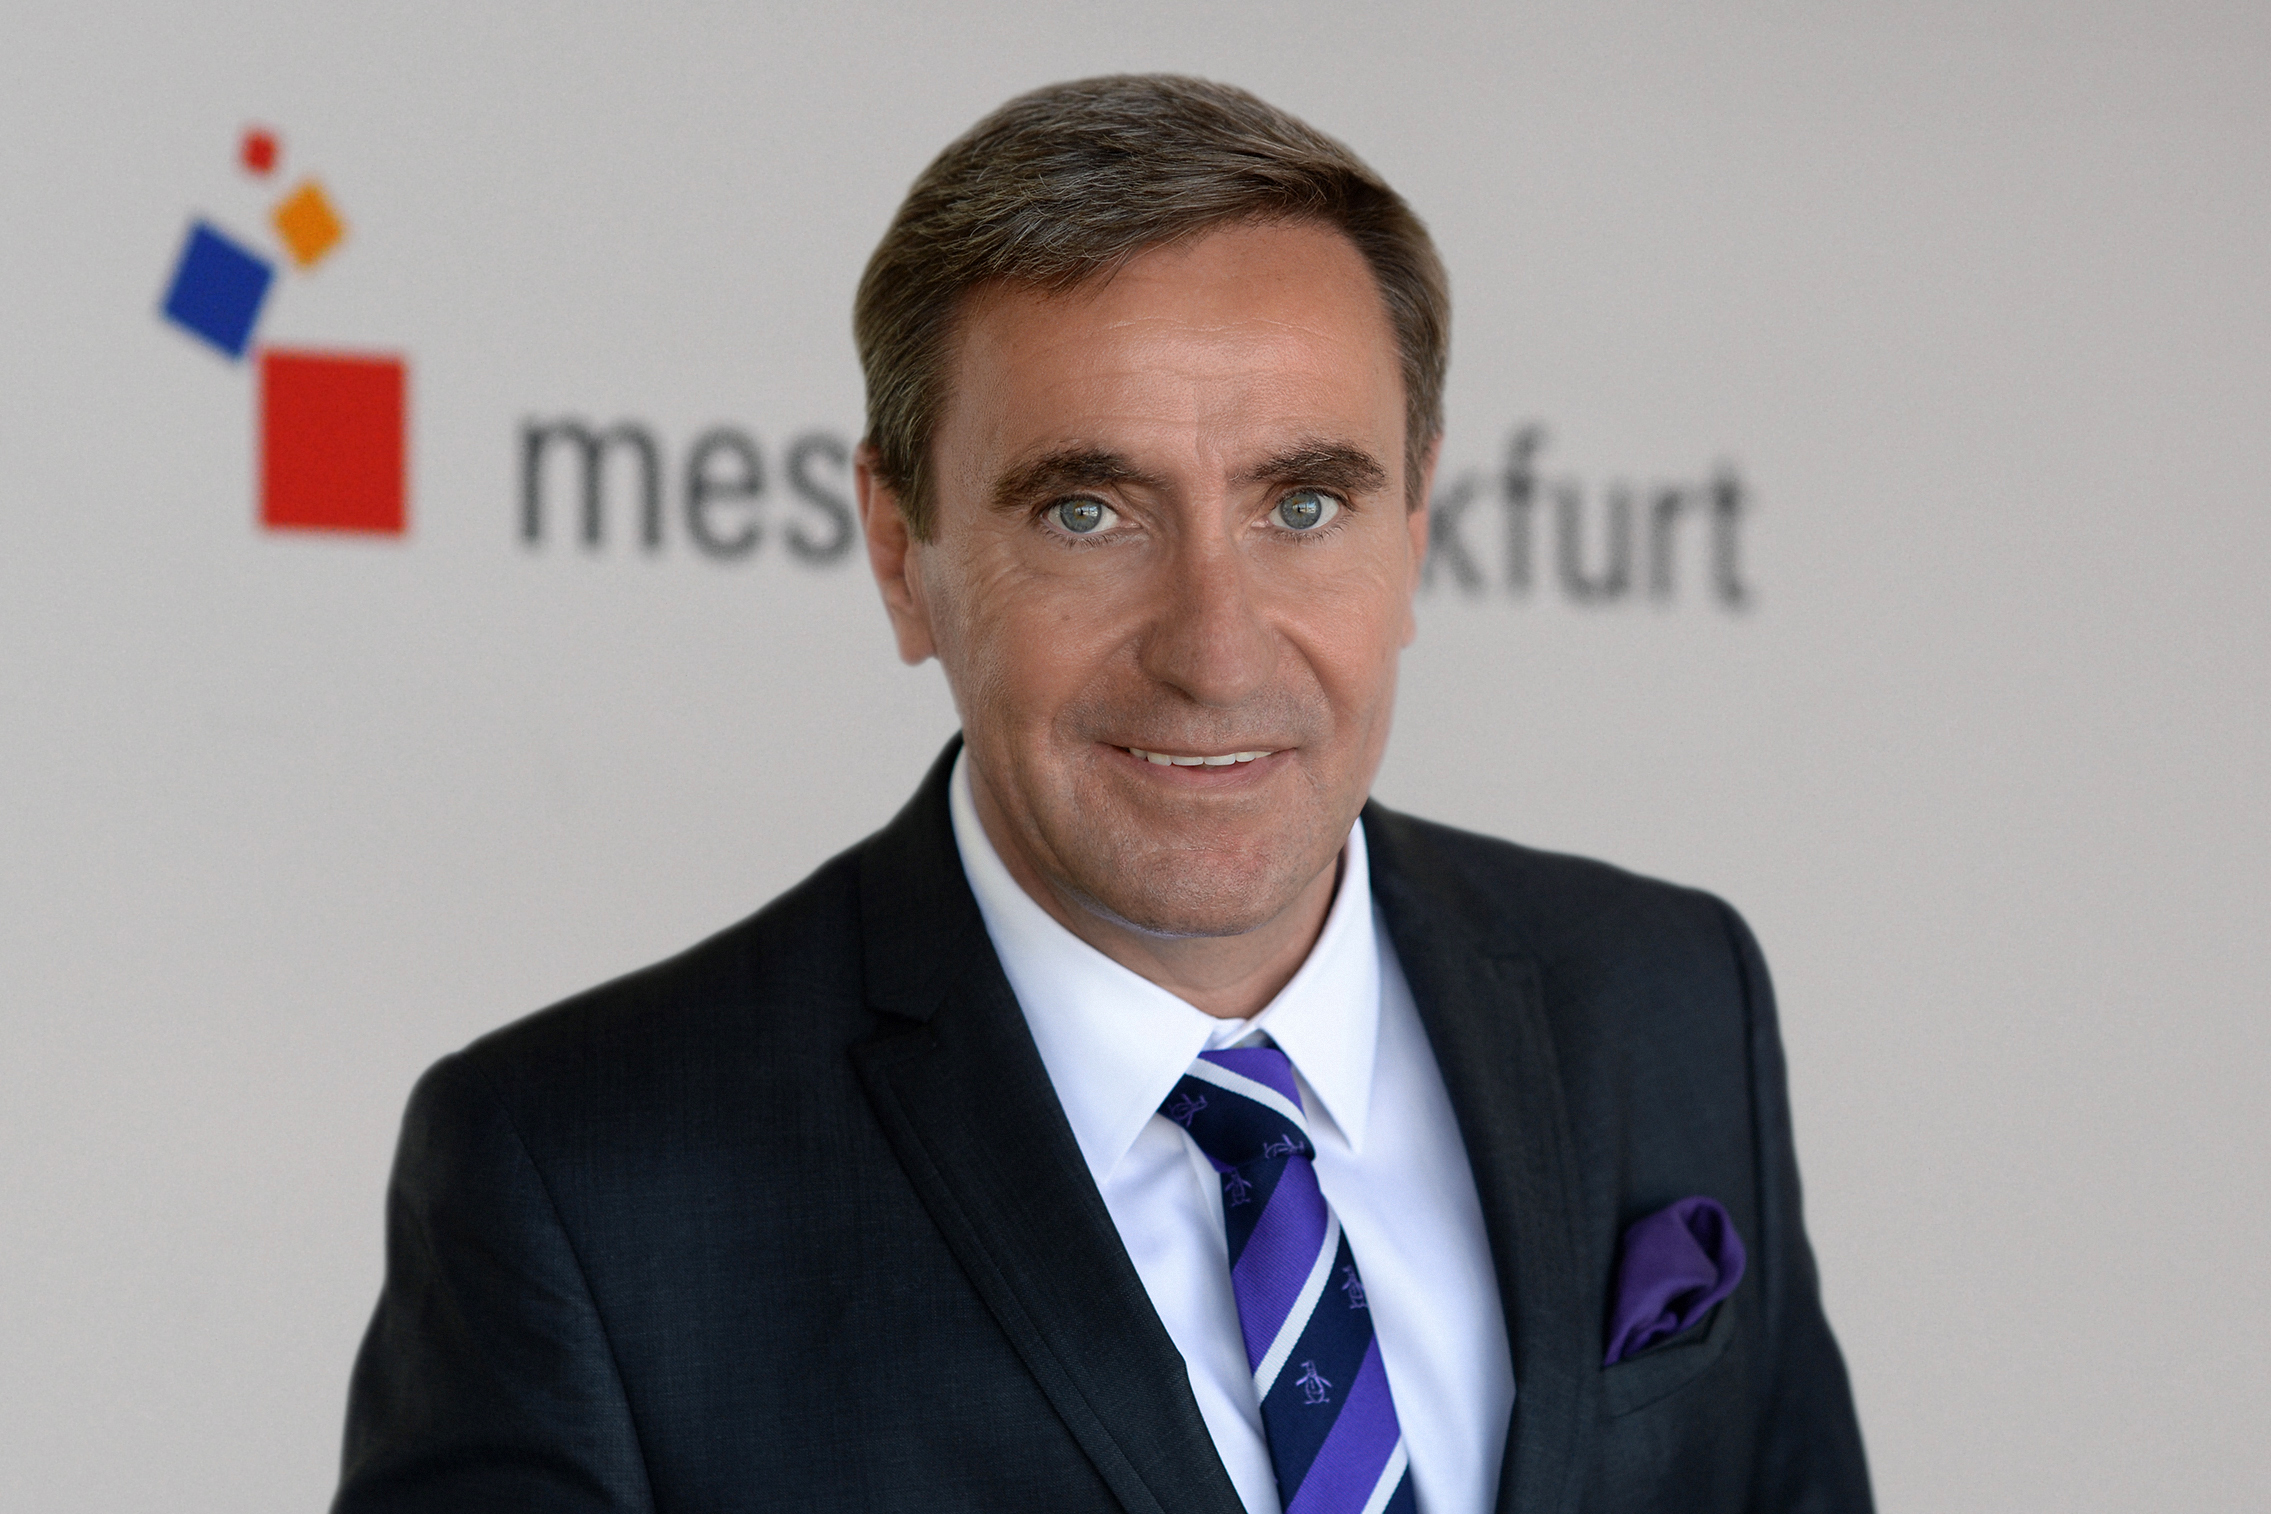 Stephan Kurzawski, Consumer Goods & Sales Senior Vice President Messe Frankfurt Exhibition GmbH